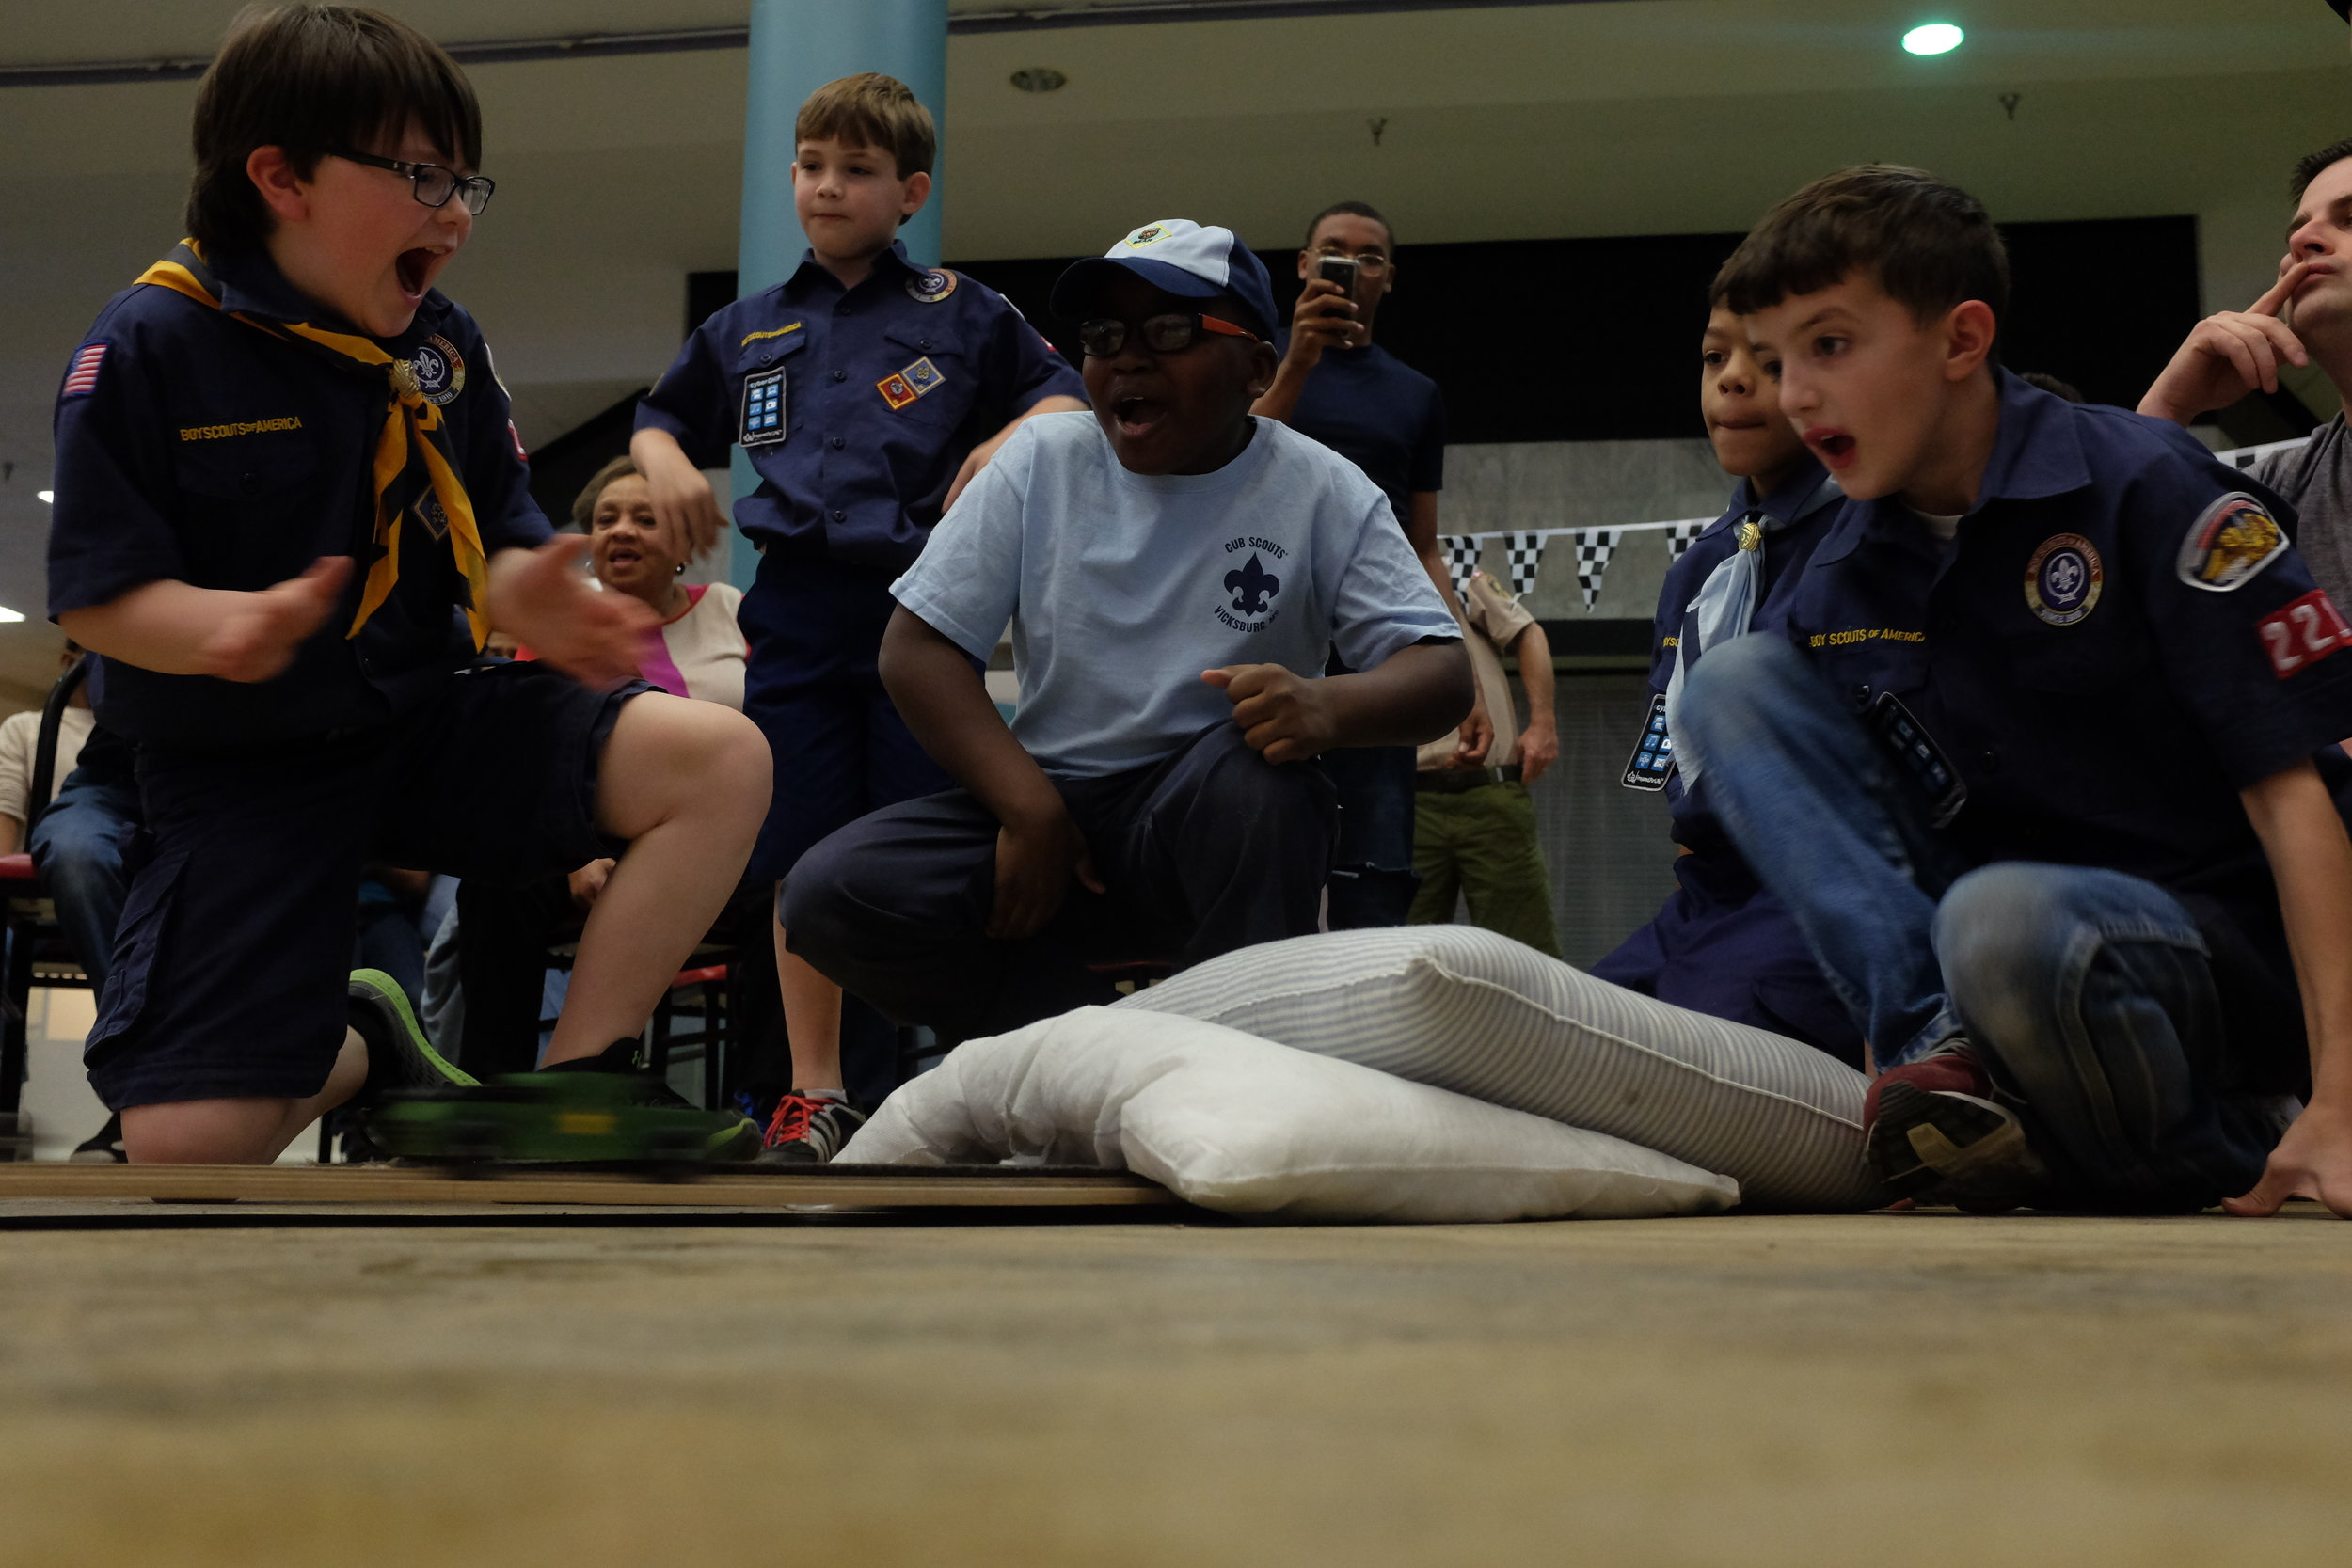 Scouts watch as a pinewood derby cars finish races on the track.  (Courtland Wells/The Vicksburg Post)